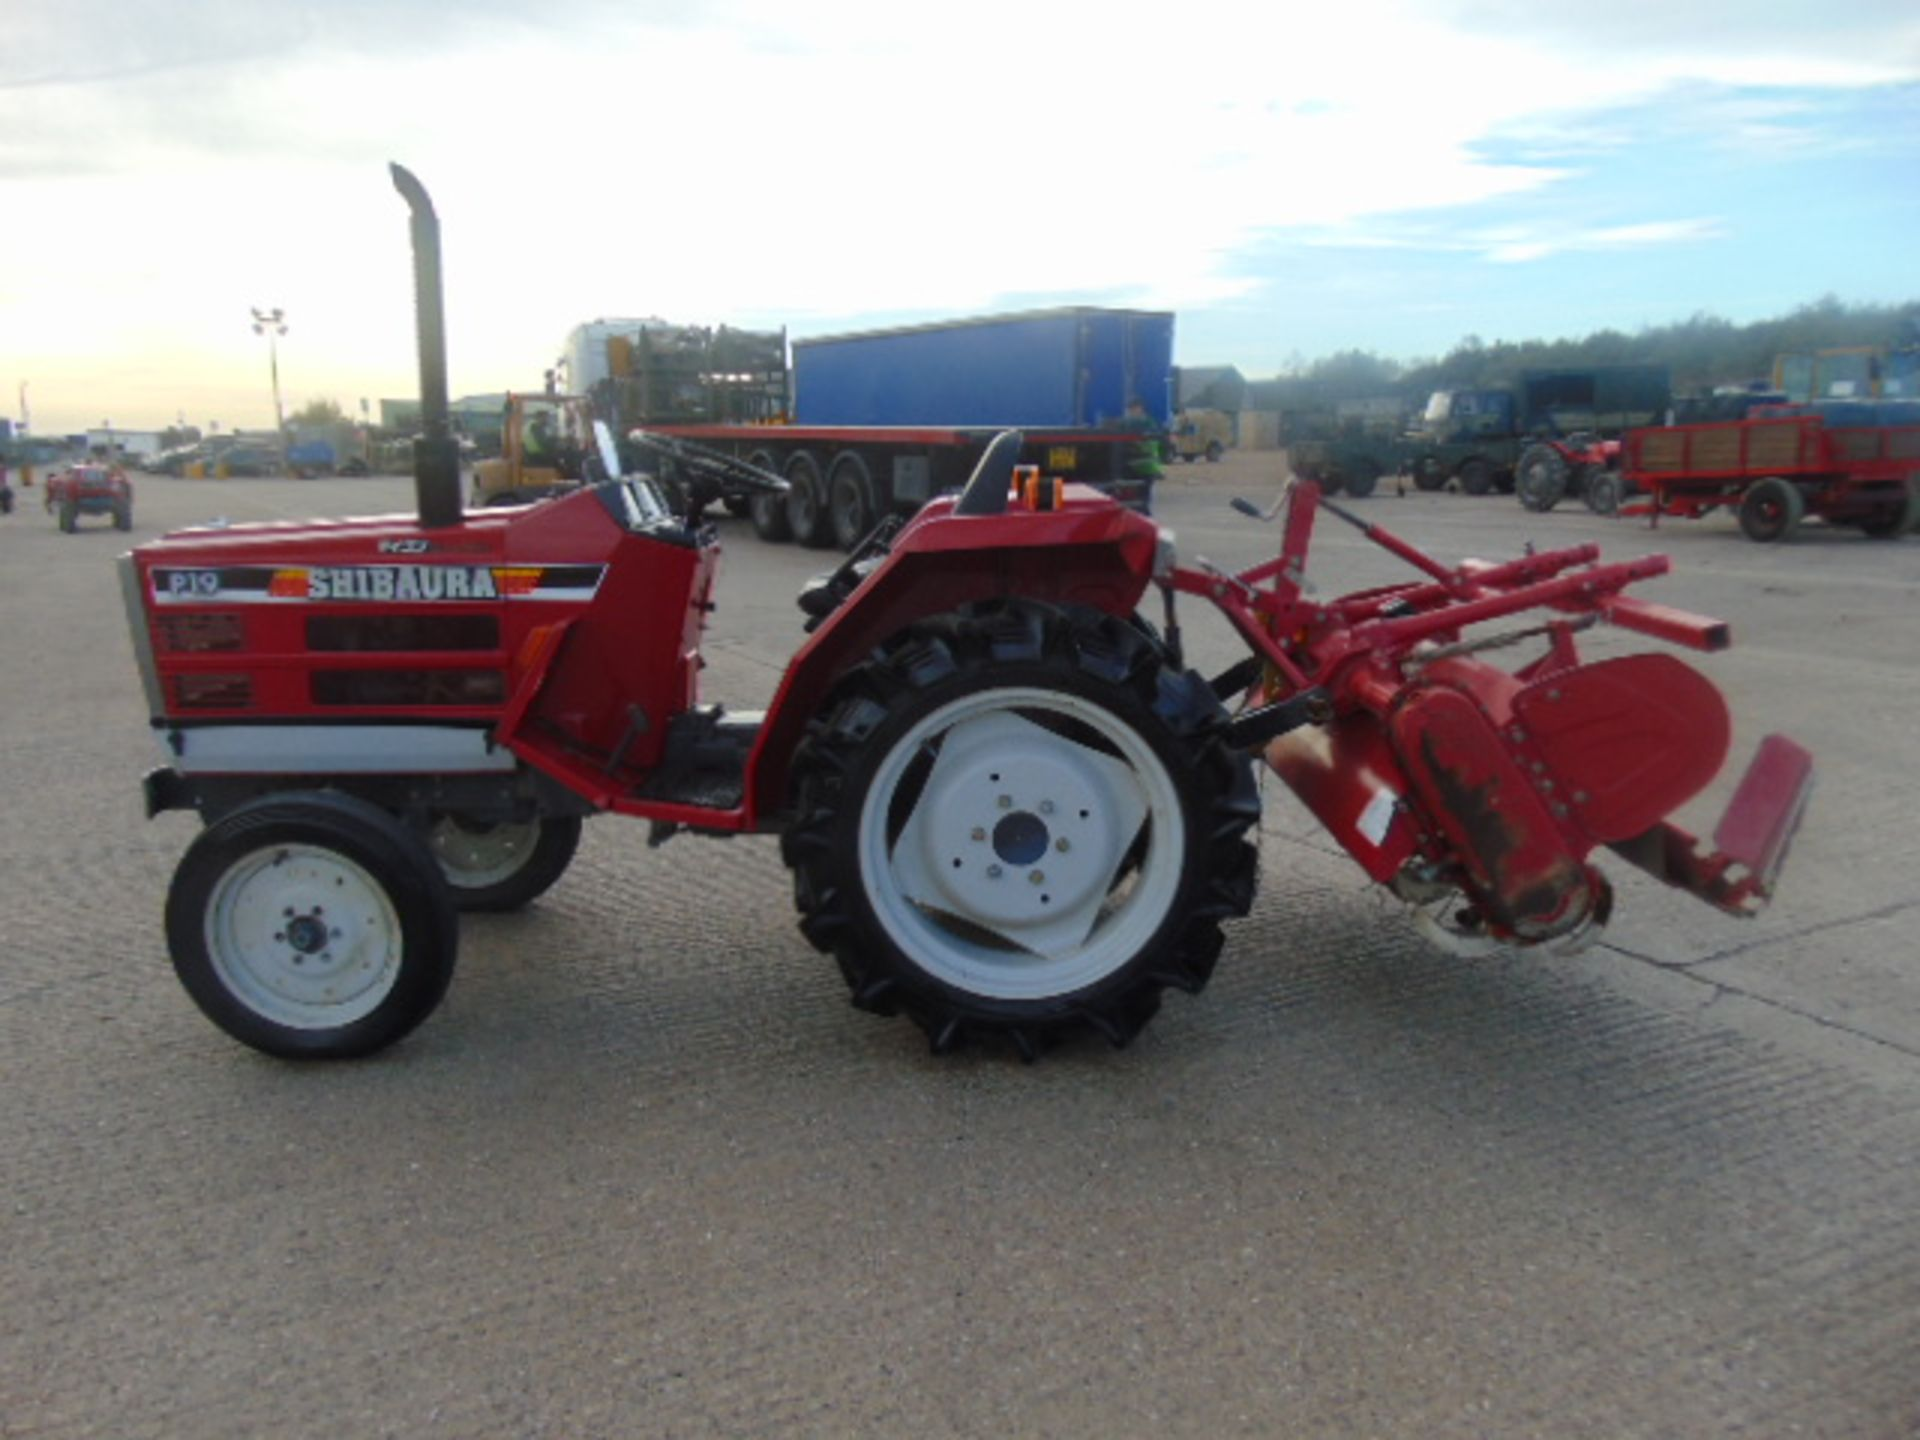 Lot 36 - Shibaura P19 Stiger Special Compact Tractor c/w Rotovator